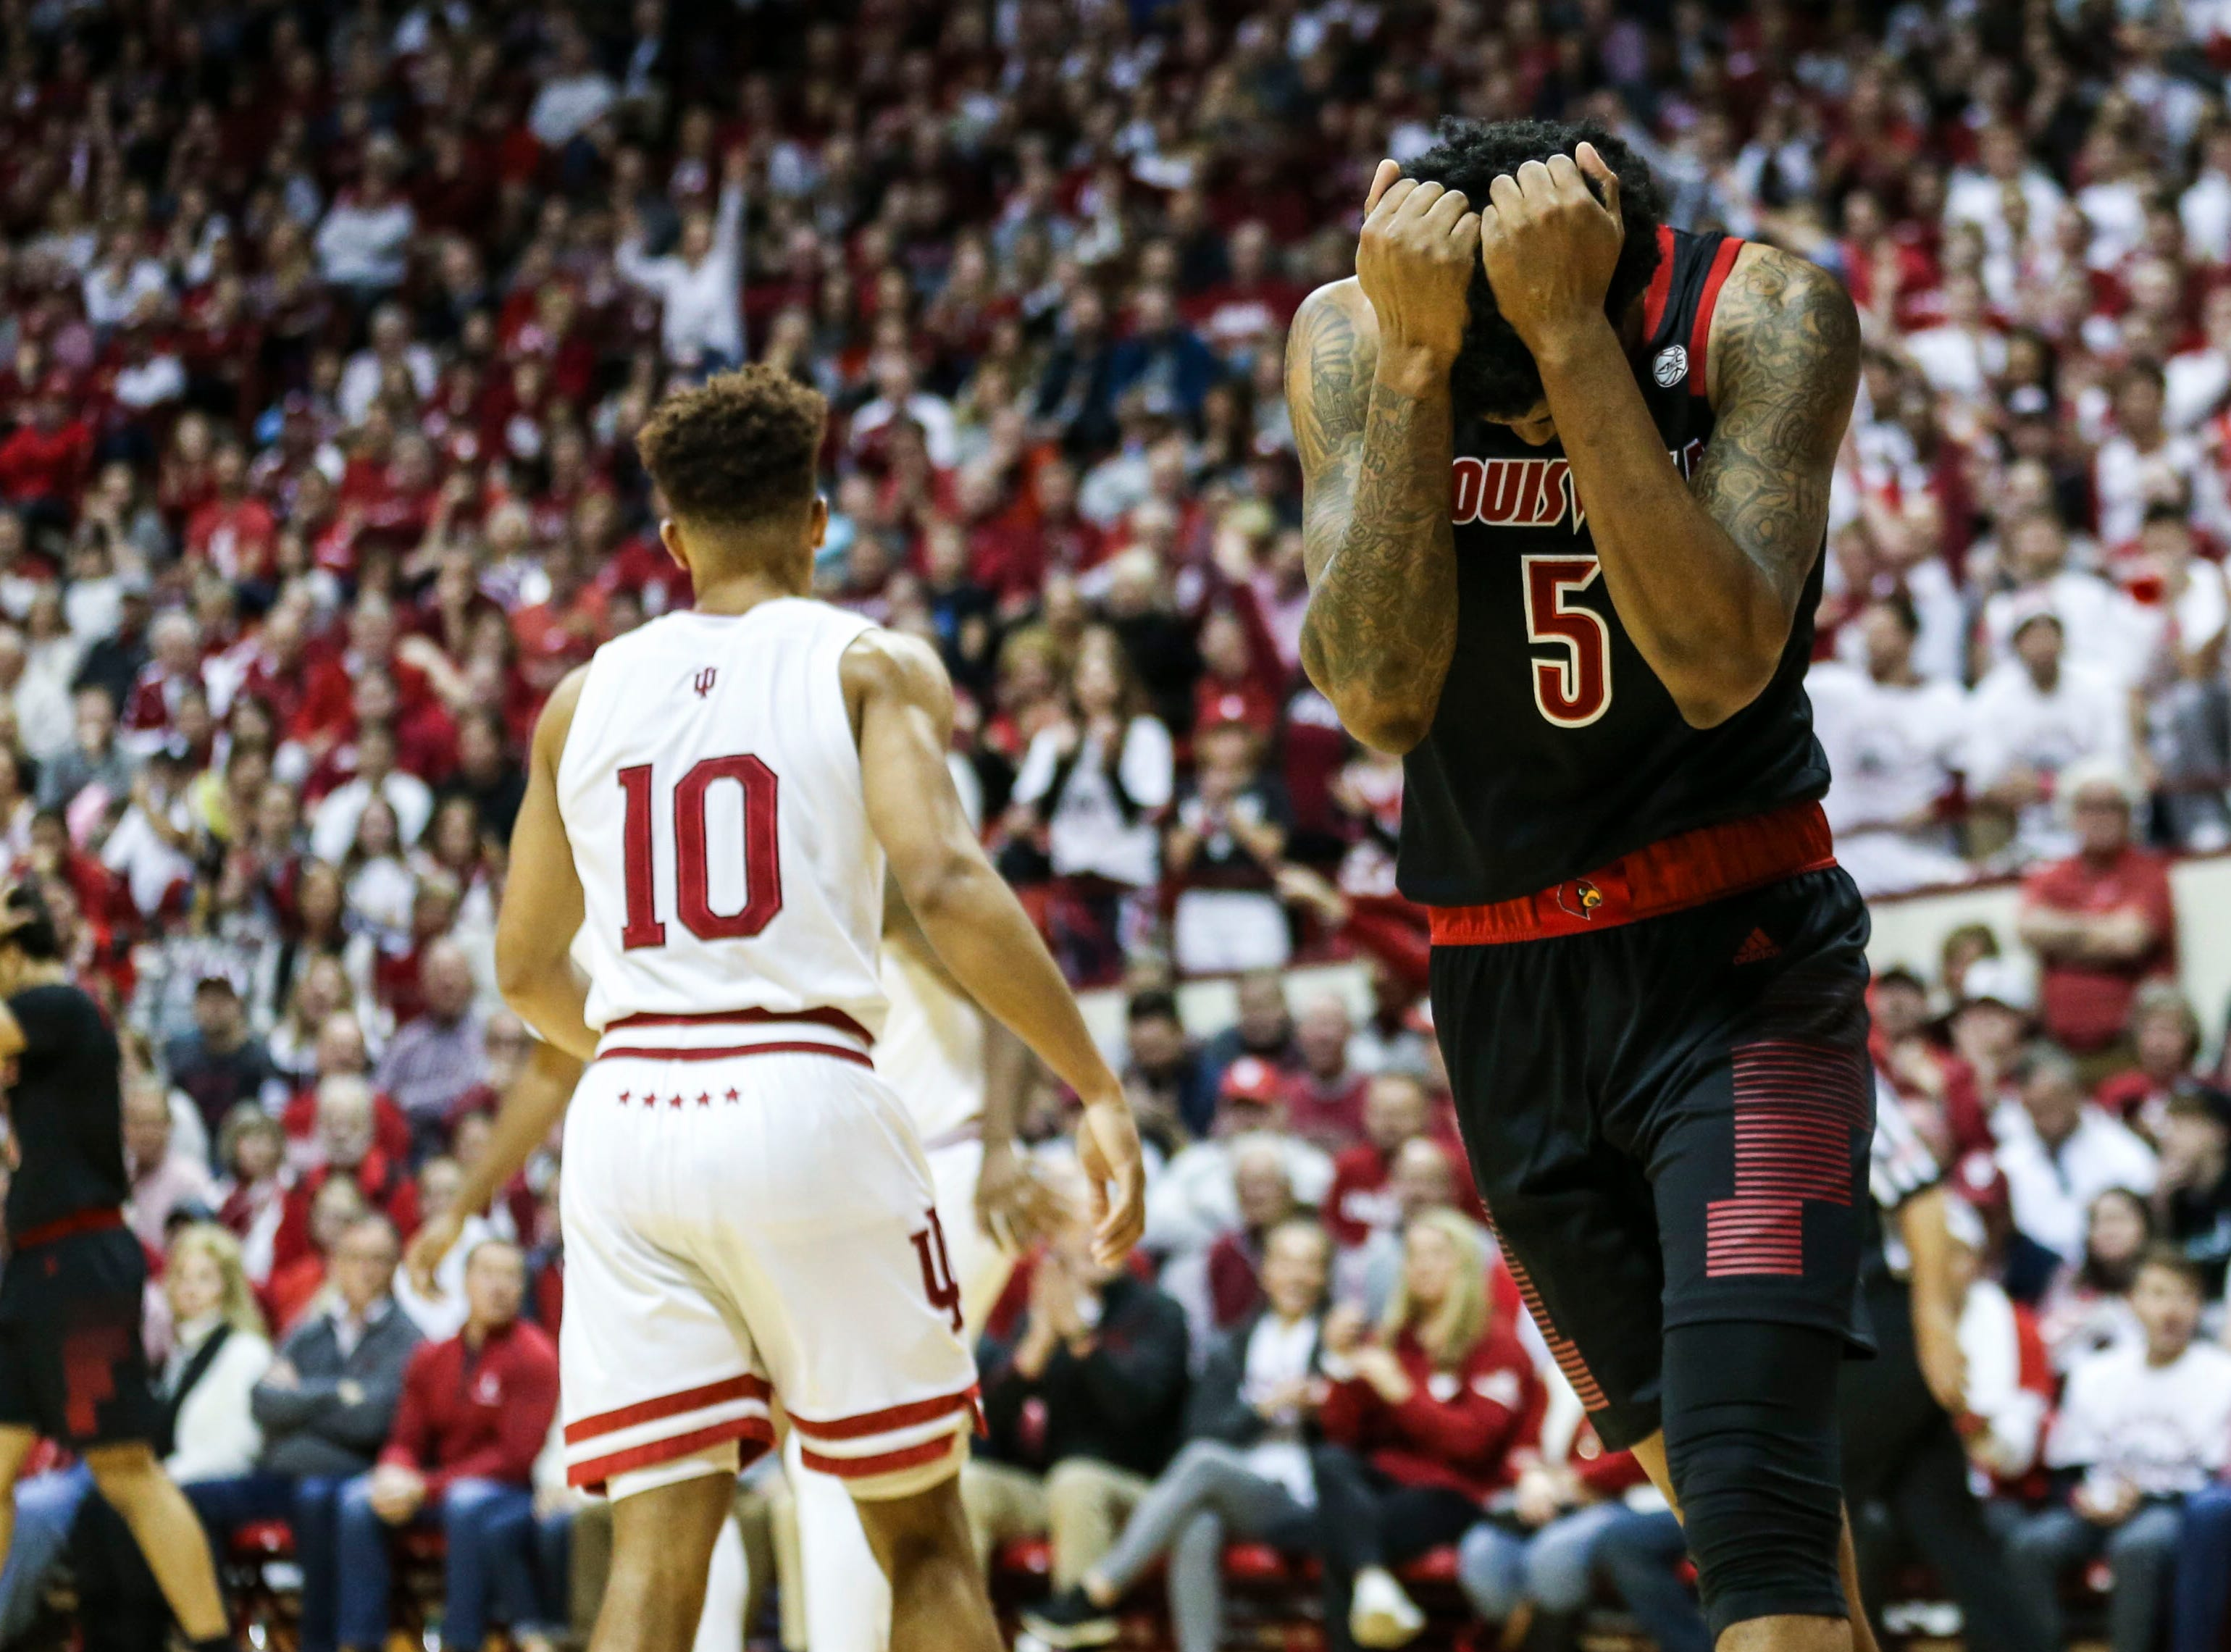 Louisville's Malik Williams reacts after losing control of the ball in the second half as the Cards lost to Indiana Saturday, Dec. 8, 2018 at Simon Skjodt Assembly Hall in Bloomington, Ind. The Hoosiers beat Louisville 68-67 Williams finished with two points.